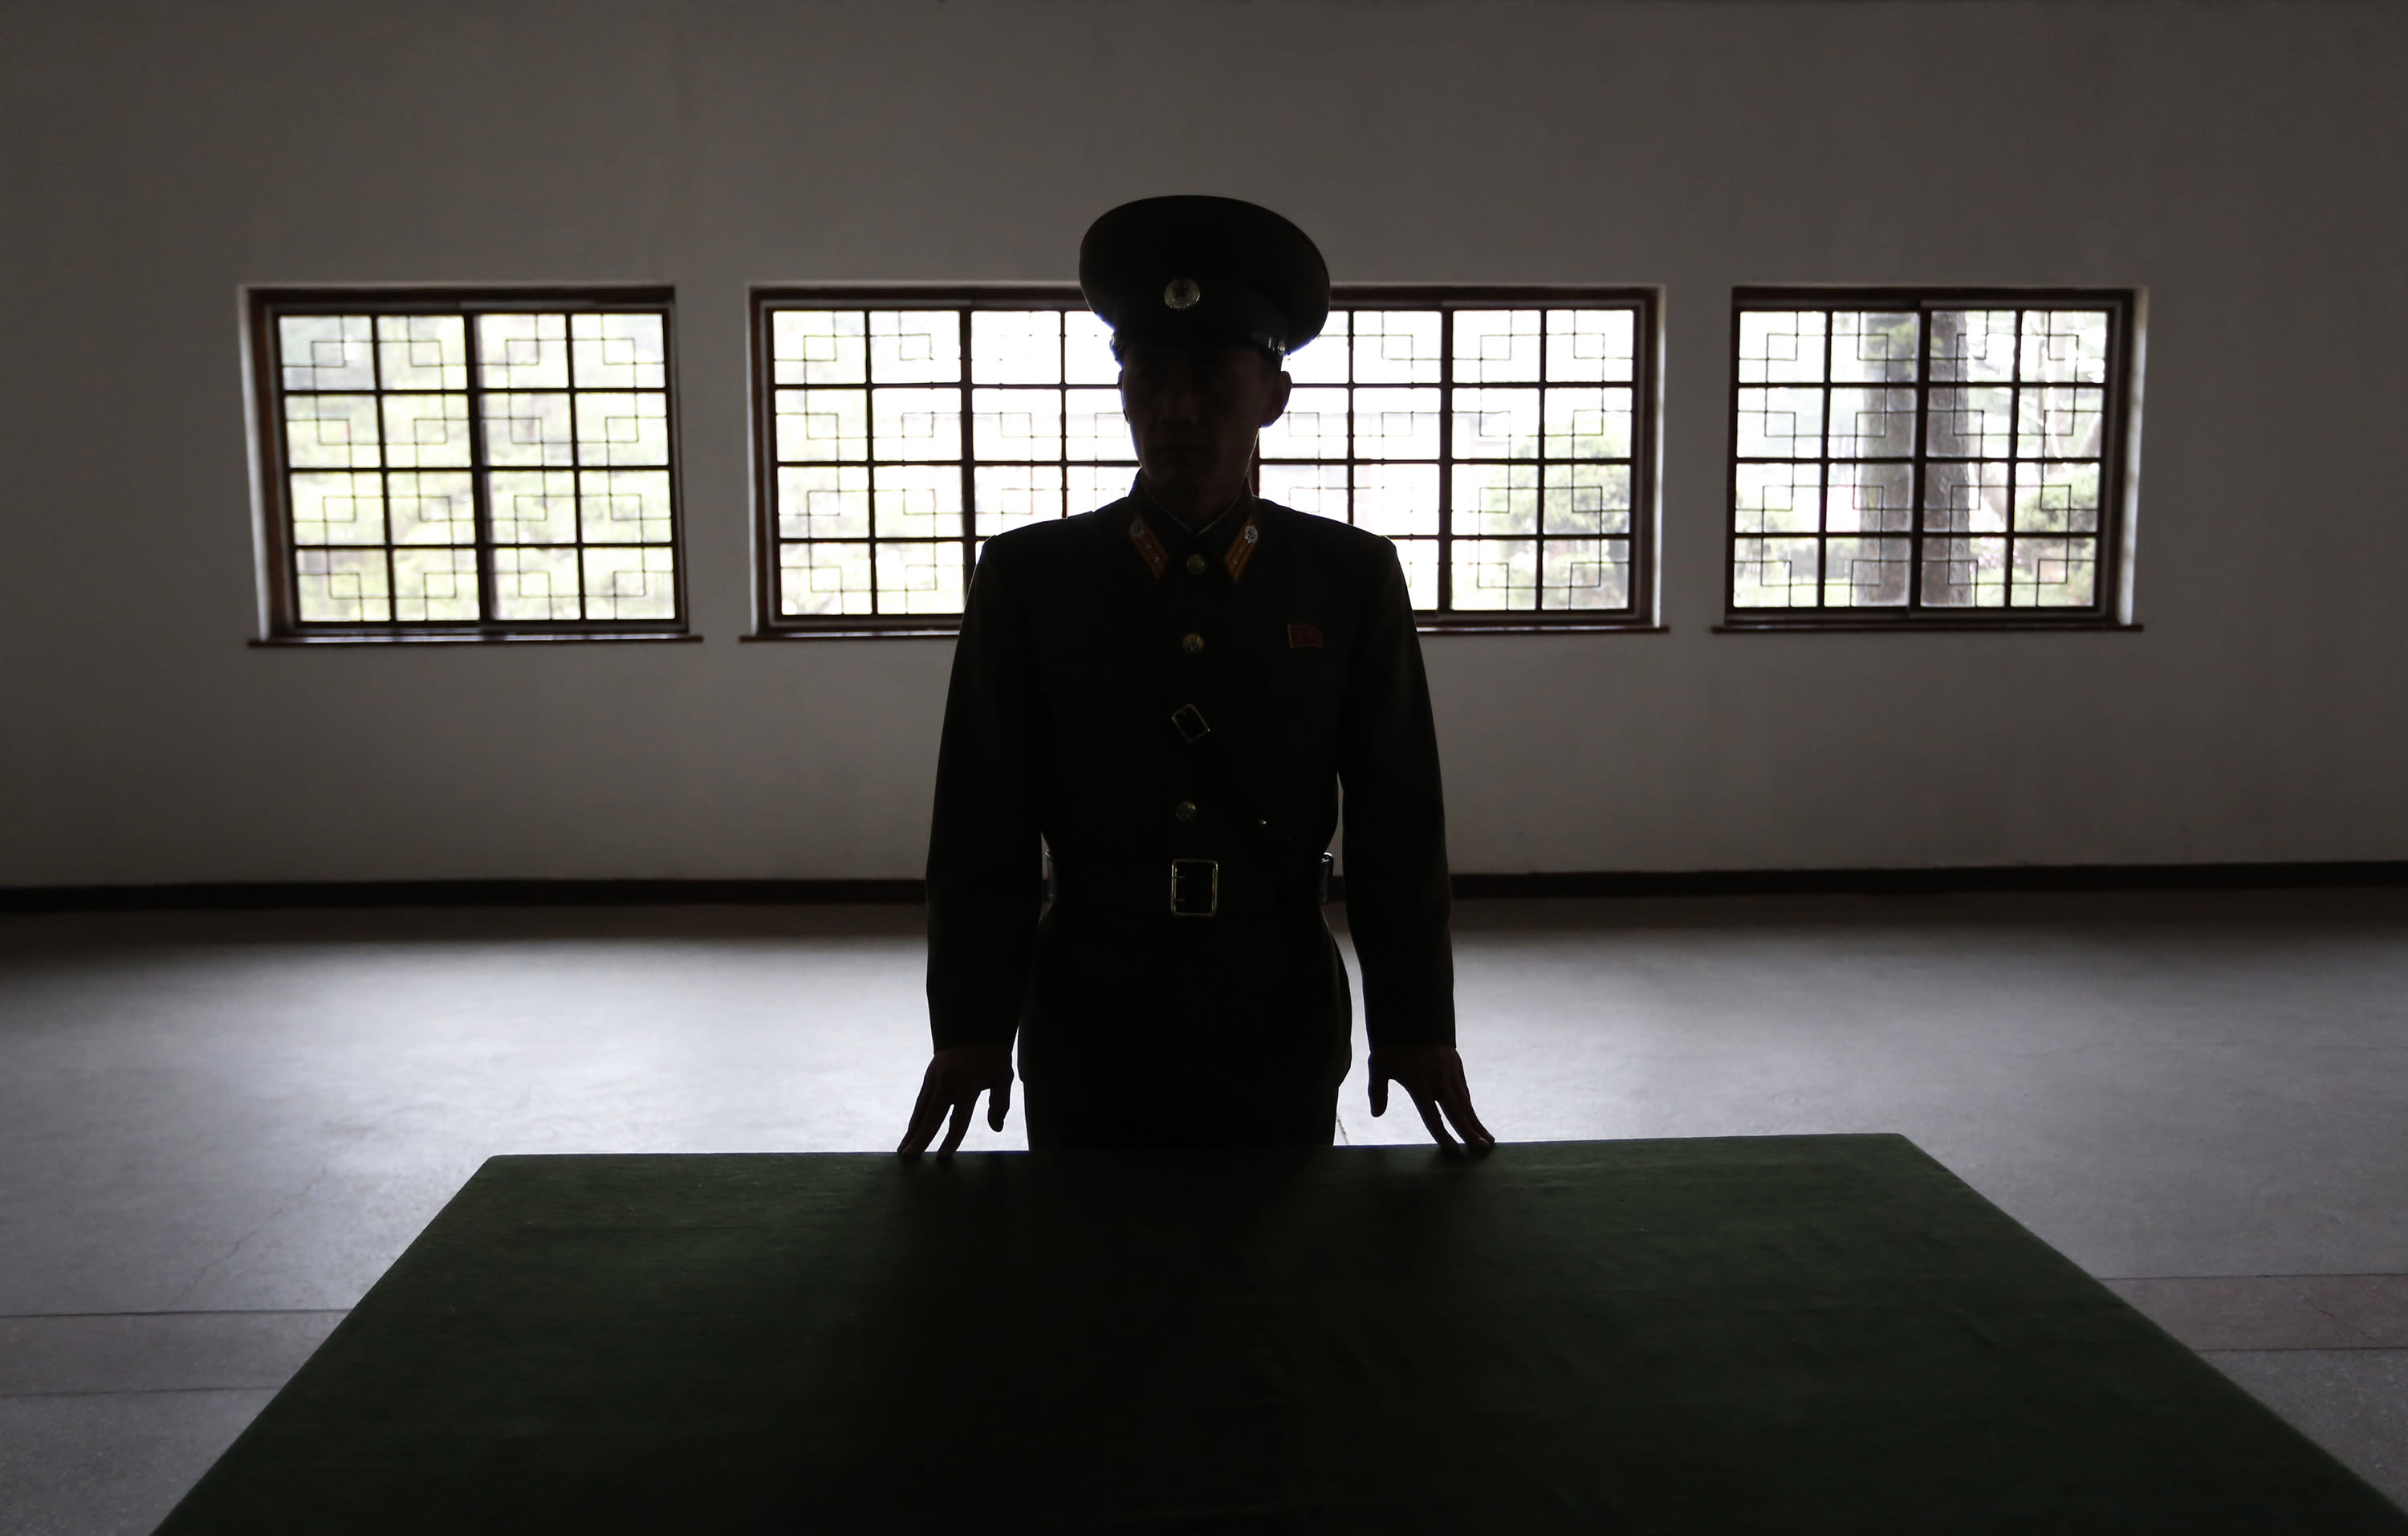 """A North Korean military officer talks the history at a museum hall at Demilitarized Zone that separates the two Koreas in Panmunjom, North Korea Monday, April 23, 2012. North Korea promised Monday to reduce South Korea's conservative government """"to ashes"""" in less than four minutes, in an unusually specific escalation of recent threats aimed at its southern rival. The statement by North Korea's military, carried by state media, comes amid rising tensions on the Korean peninsula. Both Koreas recently unveiled new missiles, and the North unsuccessfully launched a long-range rocket earlier this month. (AP Photo/Vincent Yu)"""